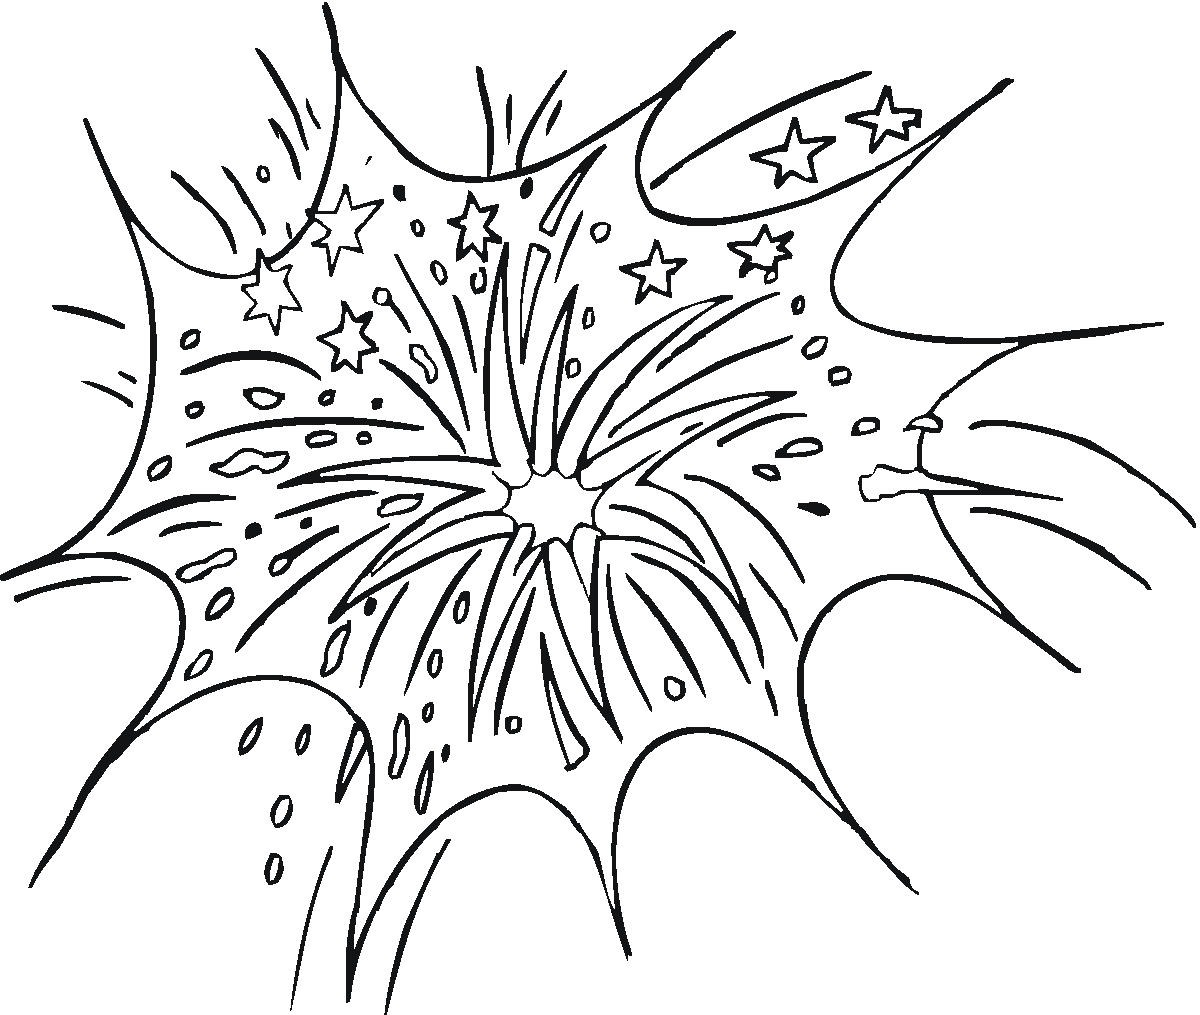 Fireworks-Coloring-Pages-Free-Printable